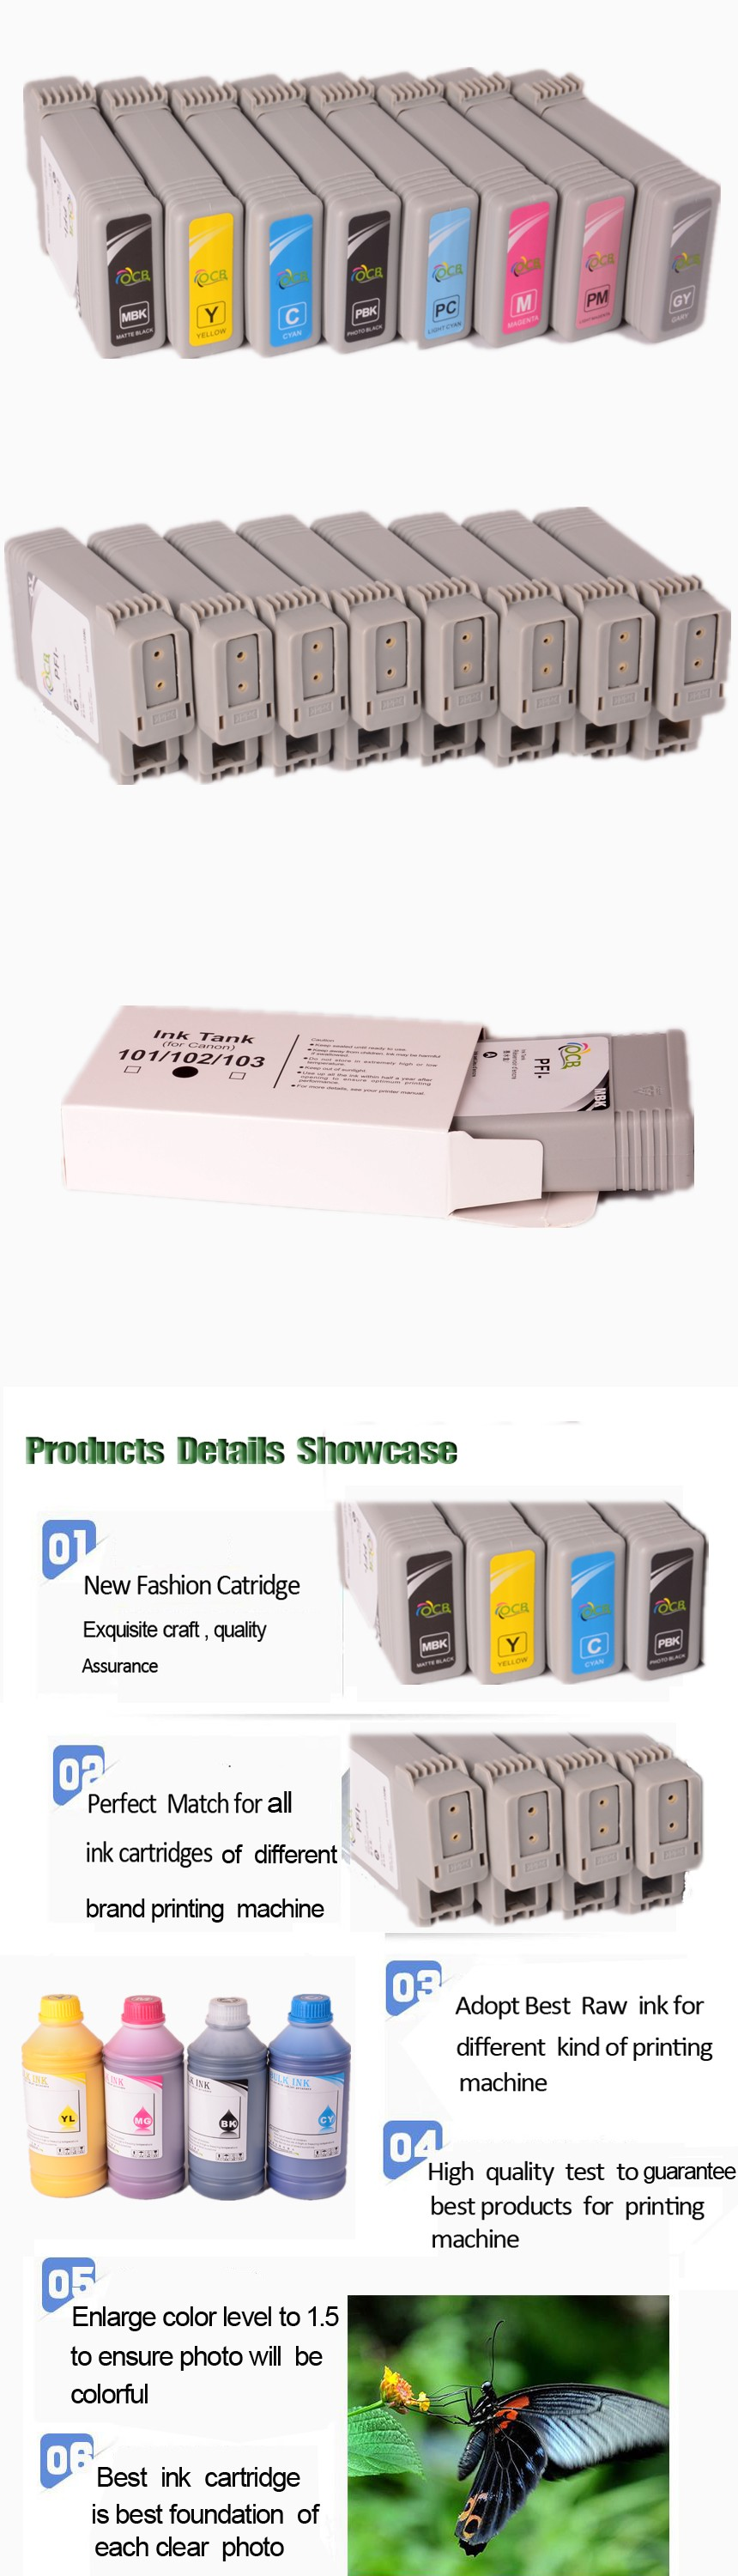 Pfi-105 260Ml Ink Cartridge For Canon Ipf 6300 6350 Compatible Ink Cartridge